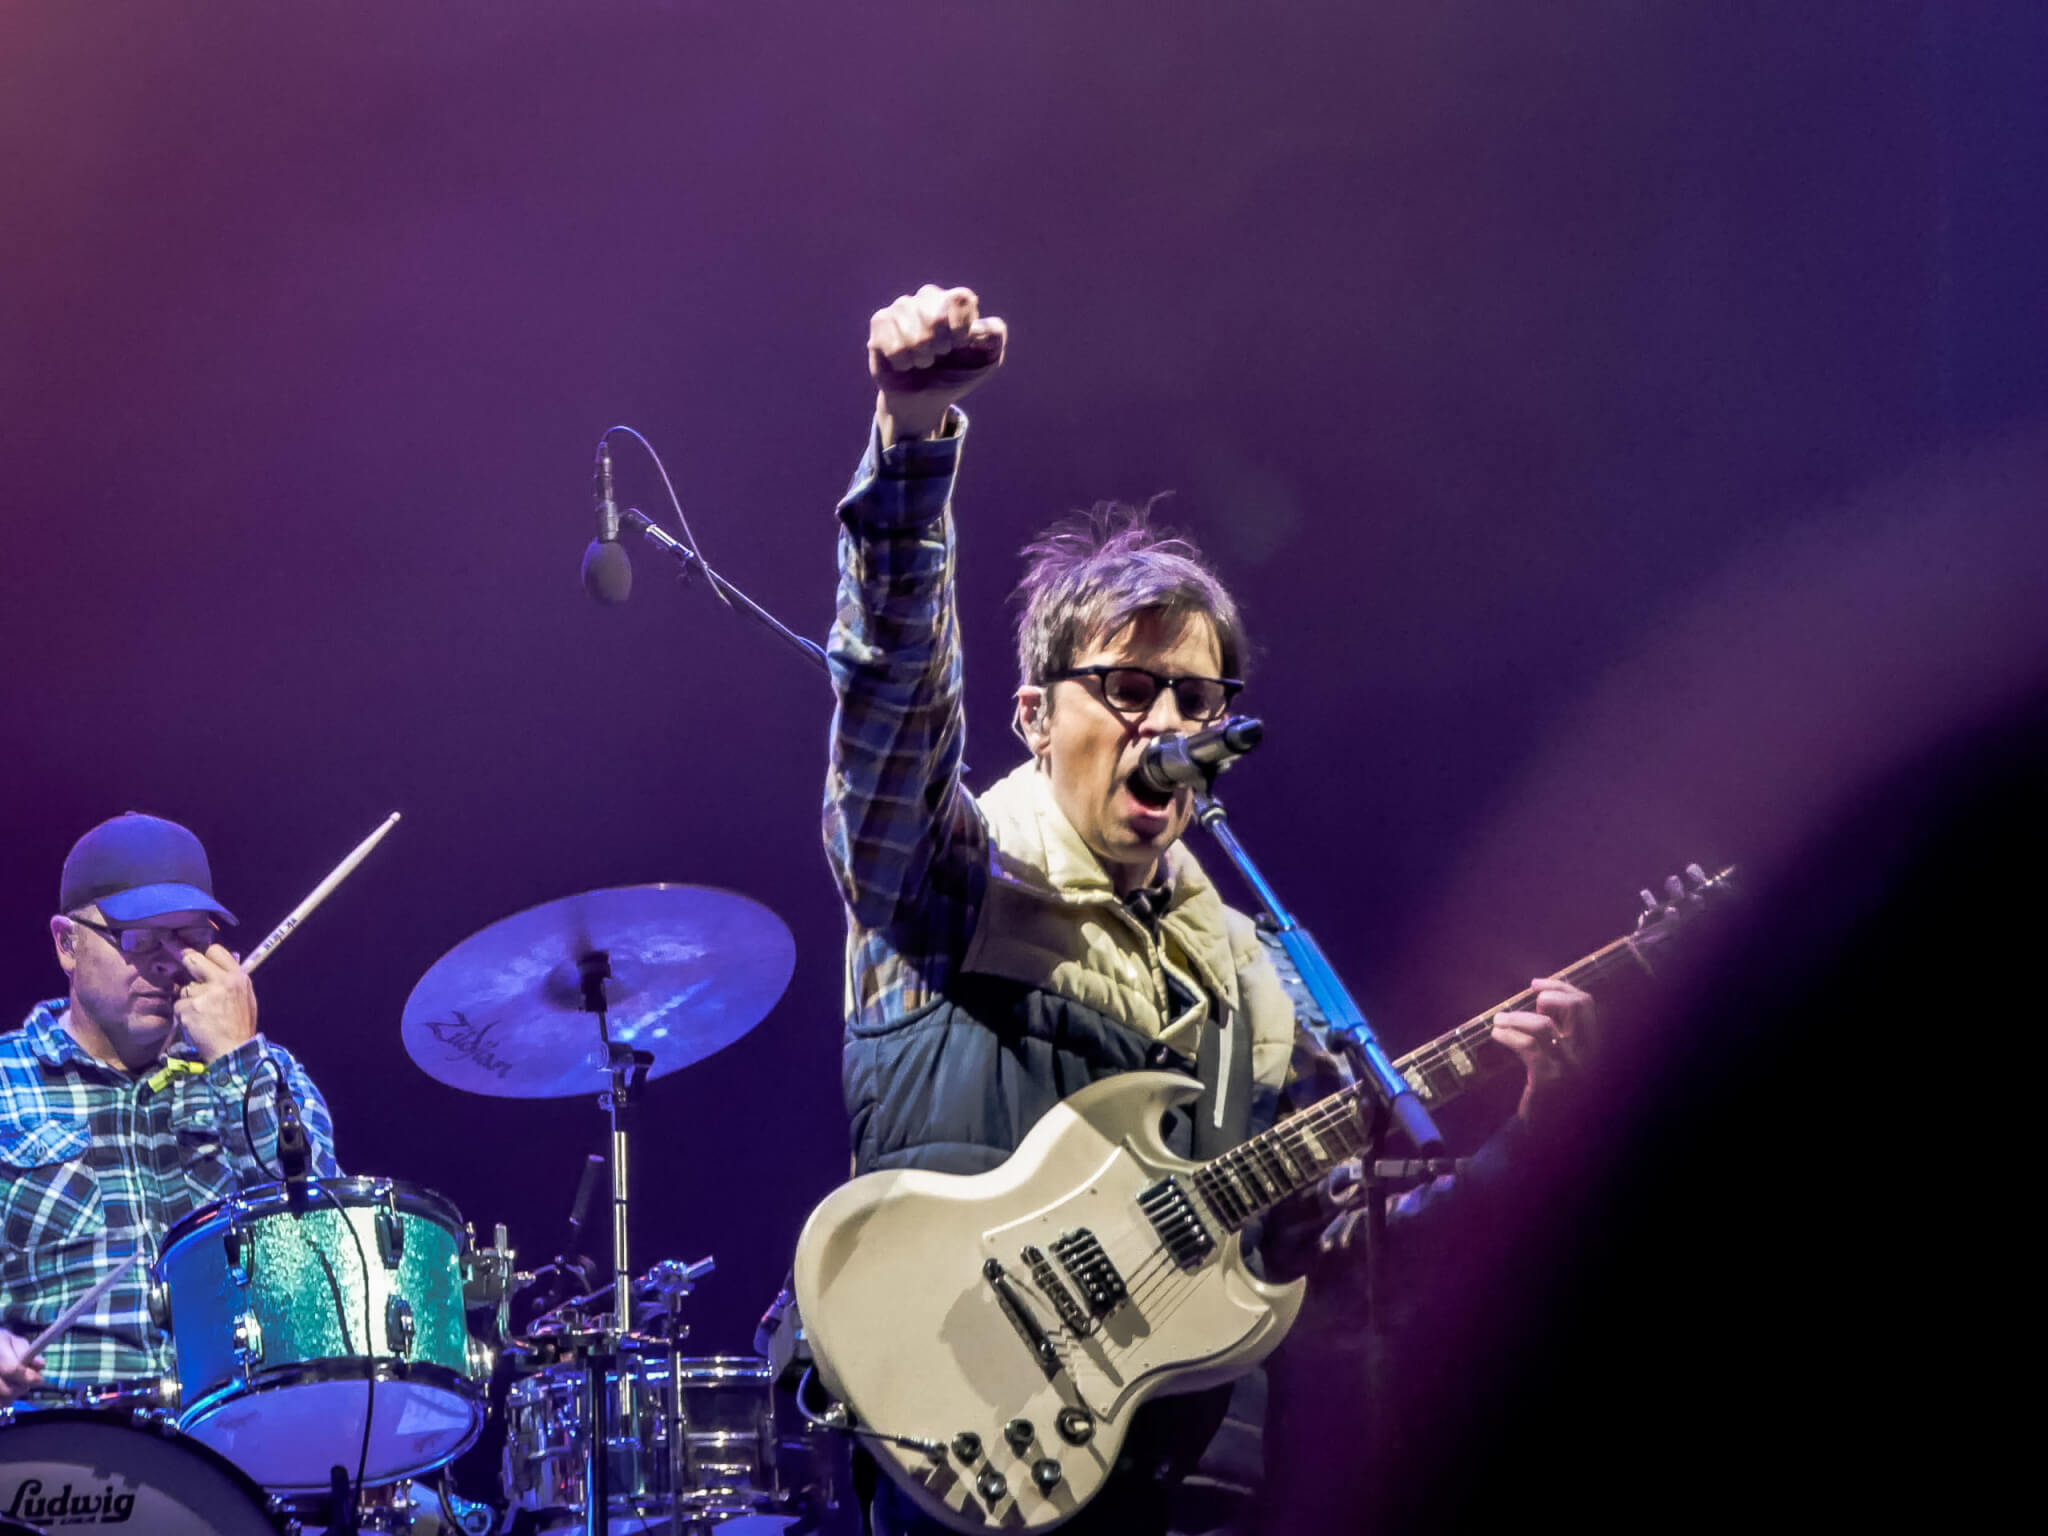 Weezer closing the night at Innings Festival; purple lights on the stage with drums and guitar.